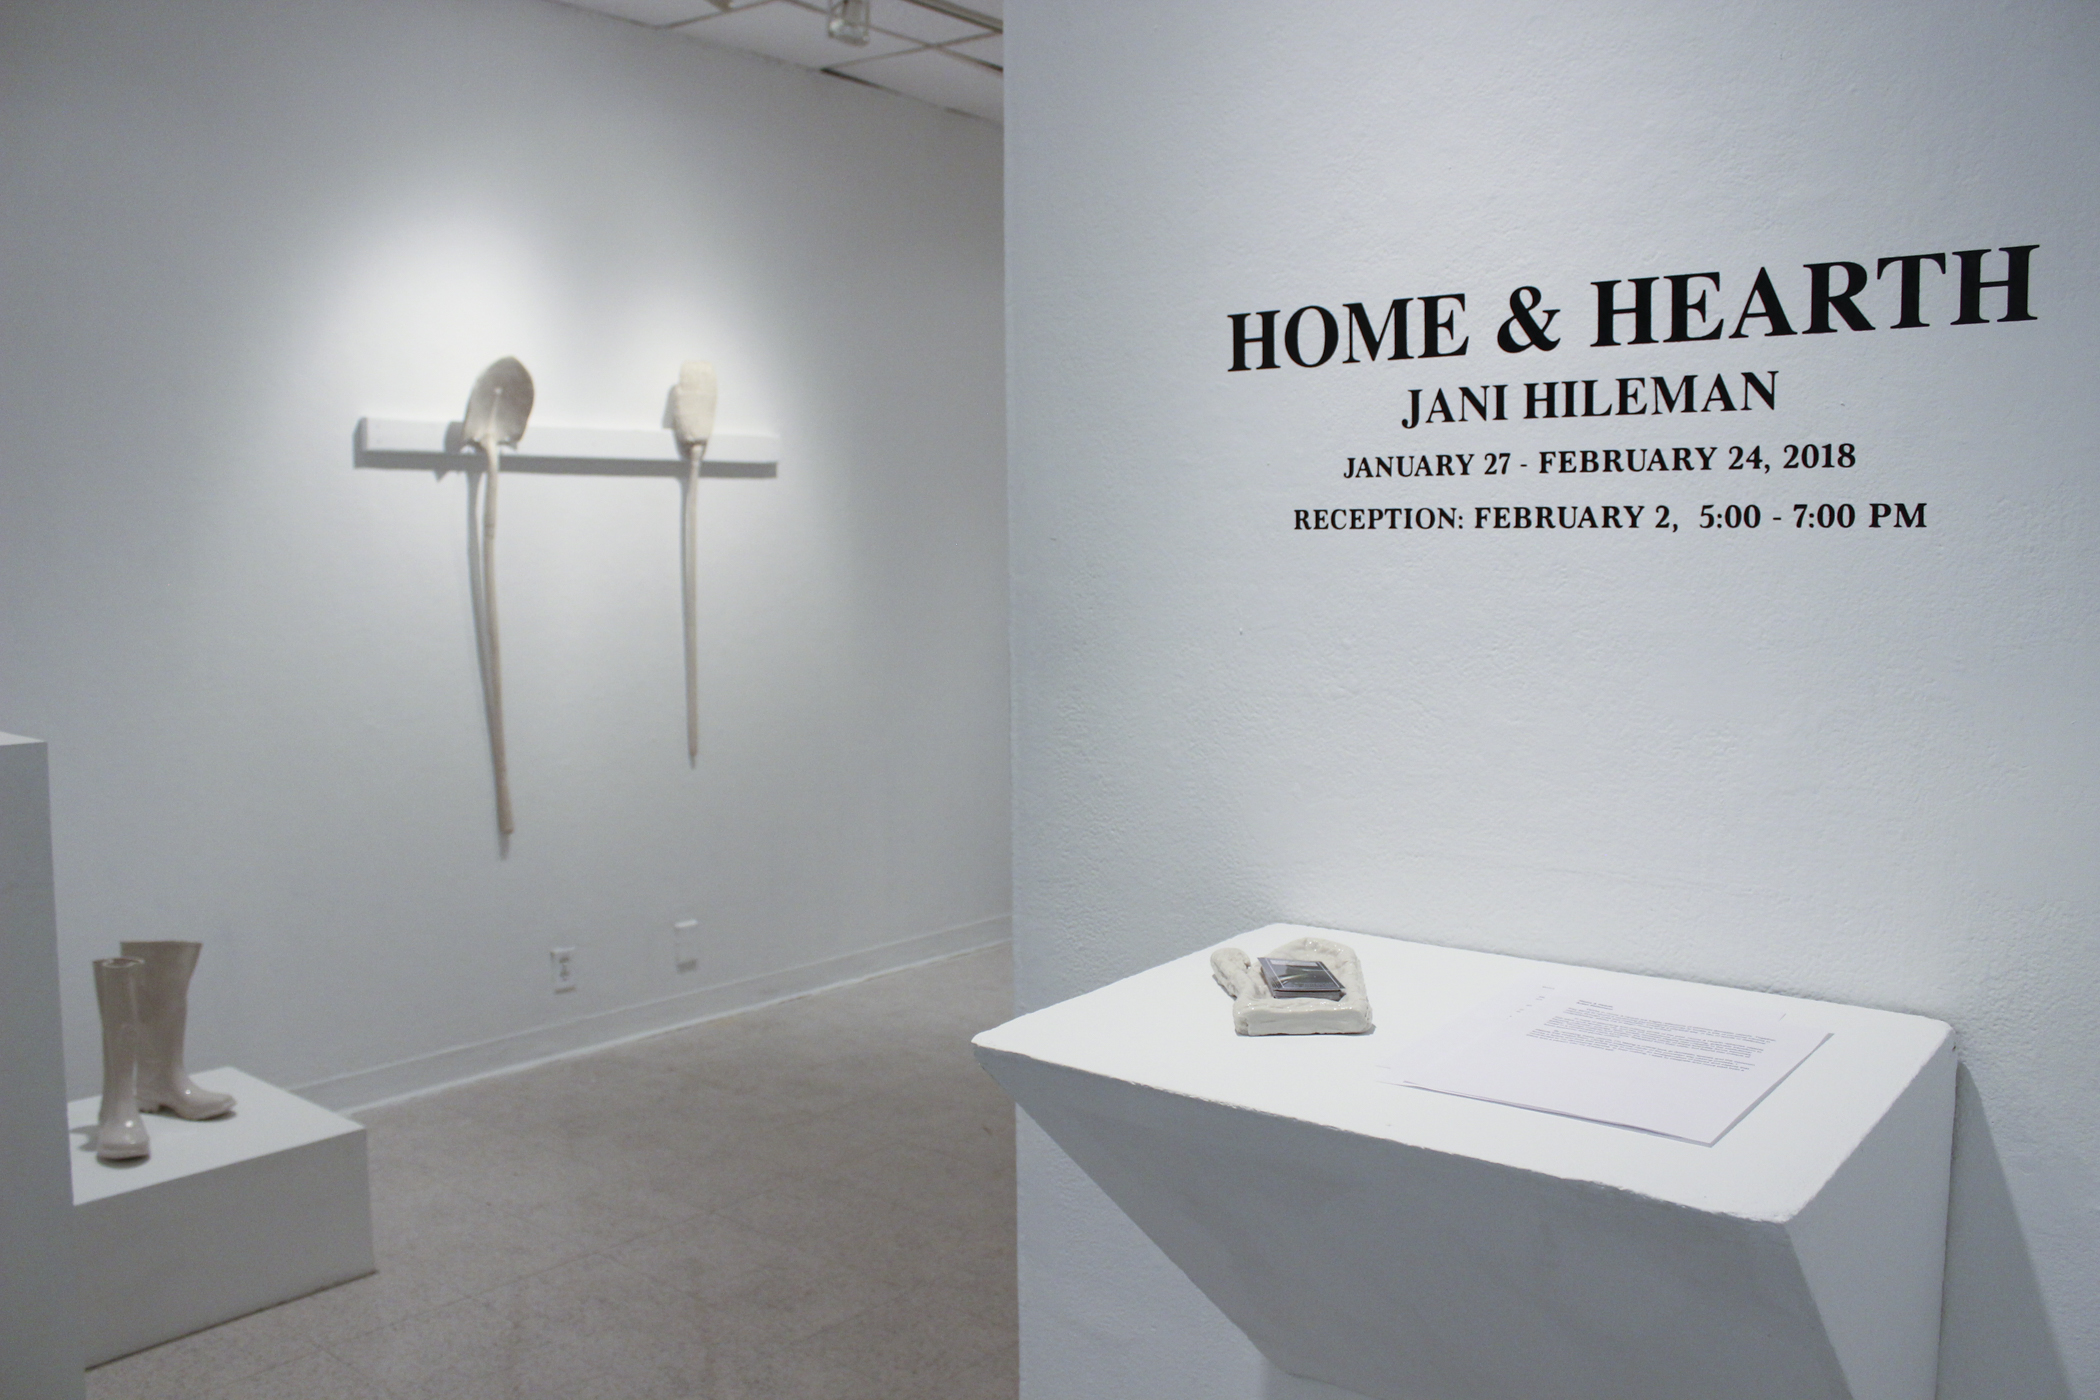 Home & Hearth - Pinkard Gallery, 2018